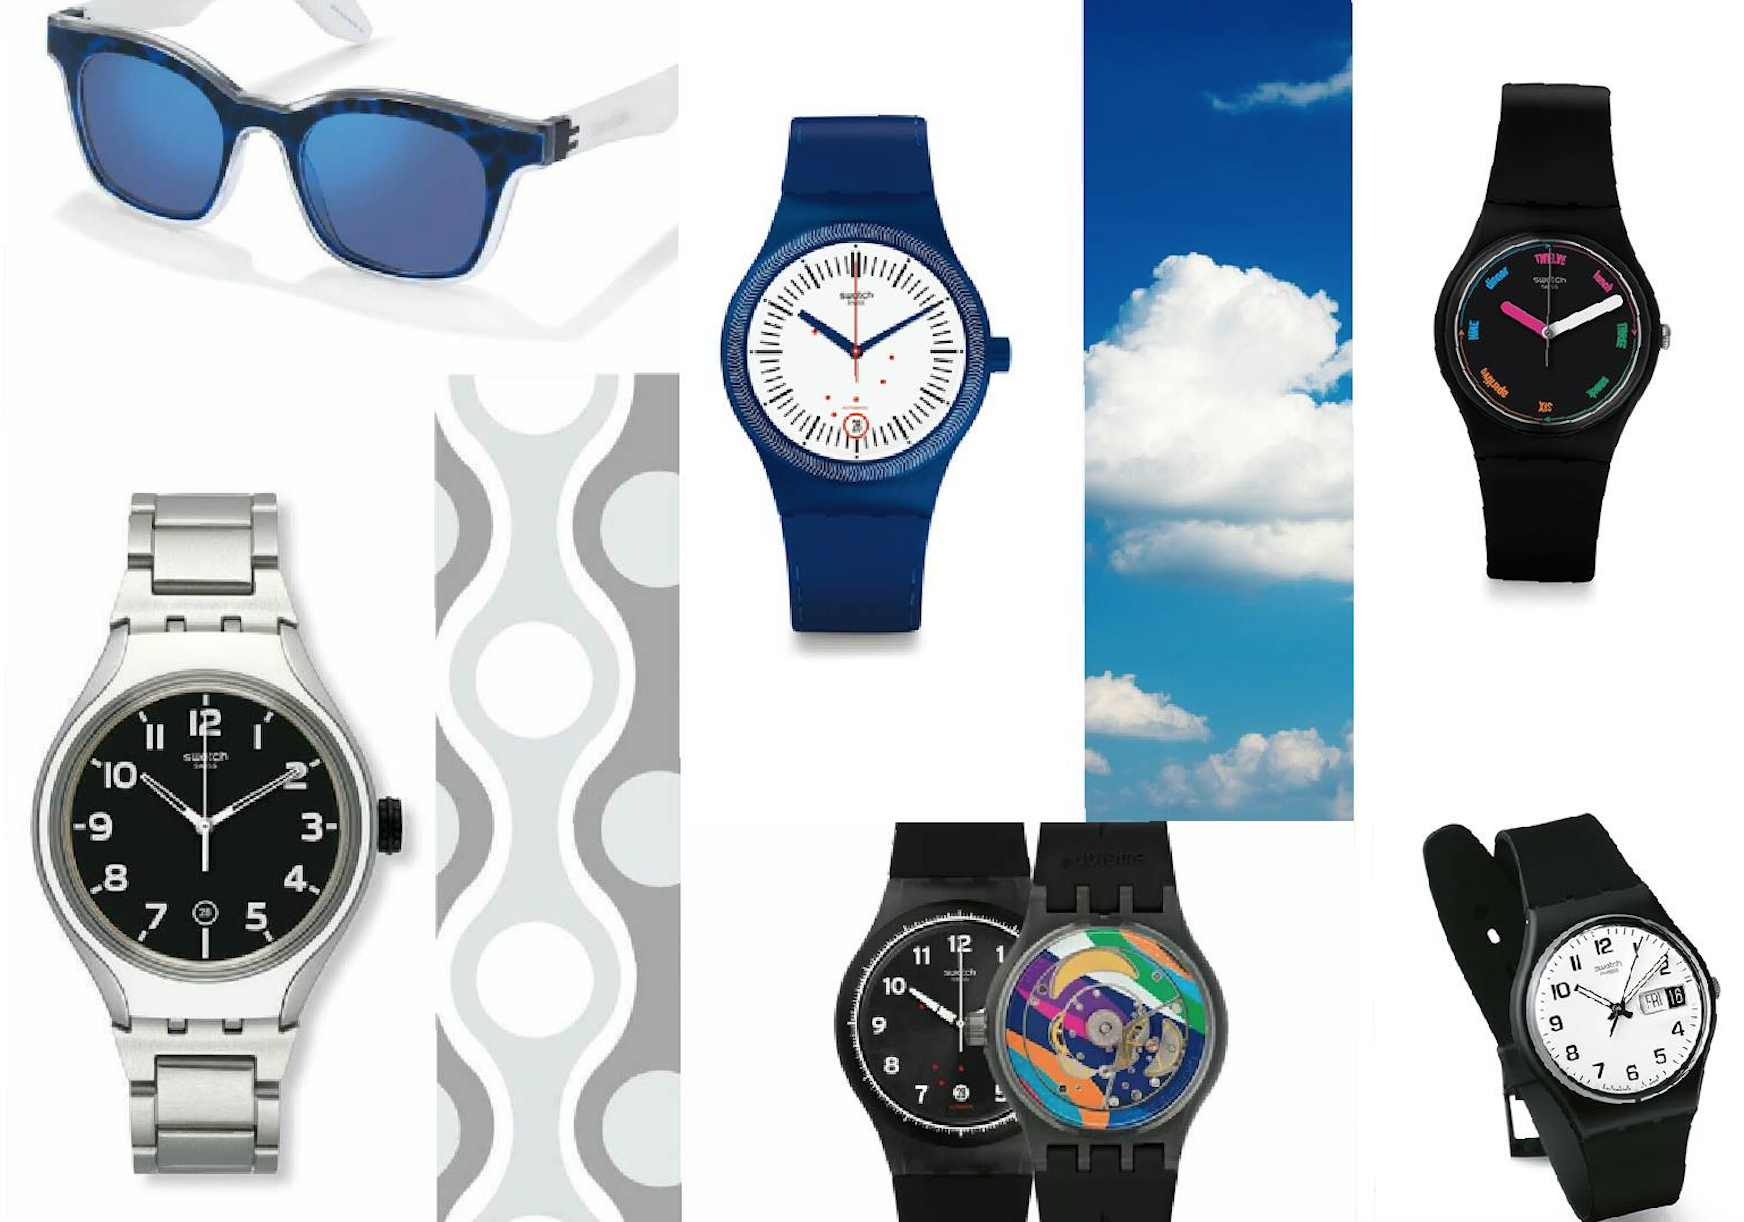 swatch-sunglasses-watches